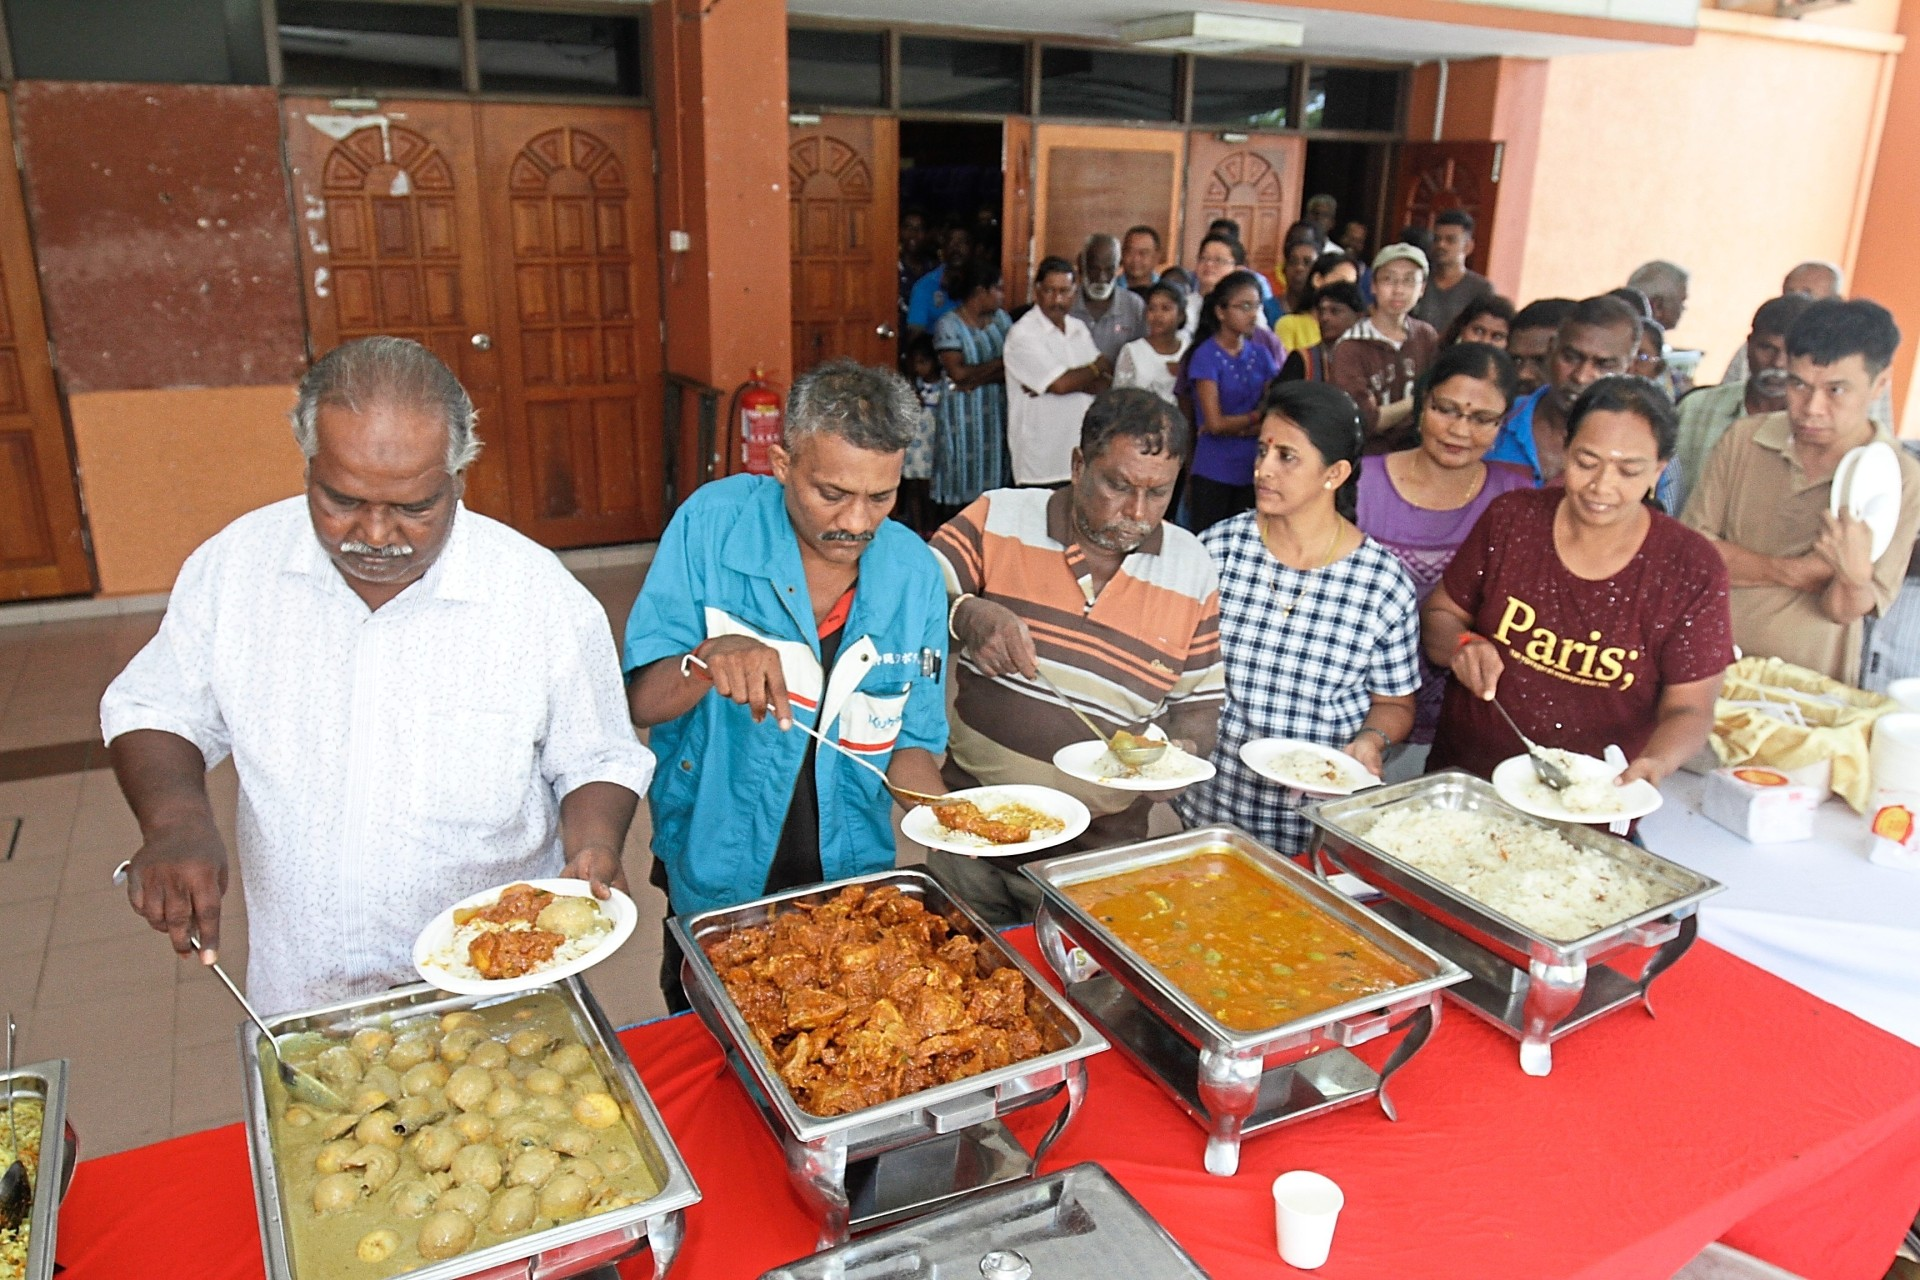 Members of the public helping themselves to the sumptuous buffet.